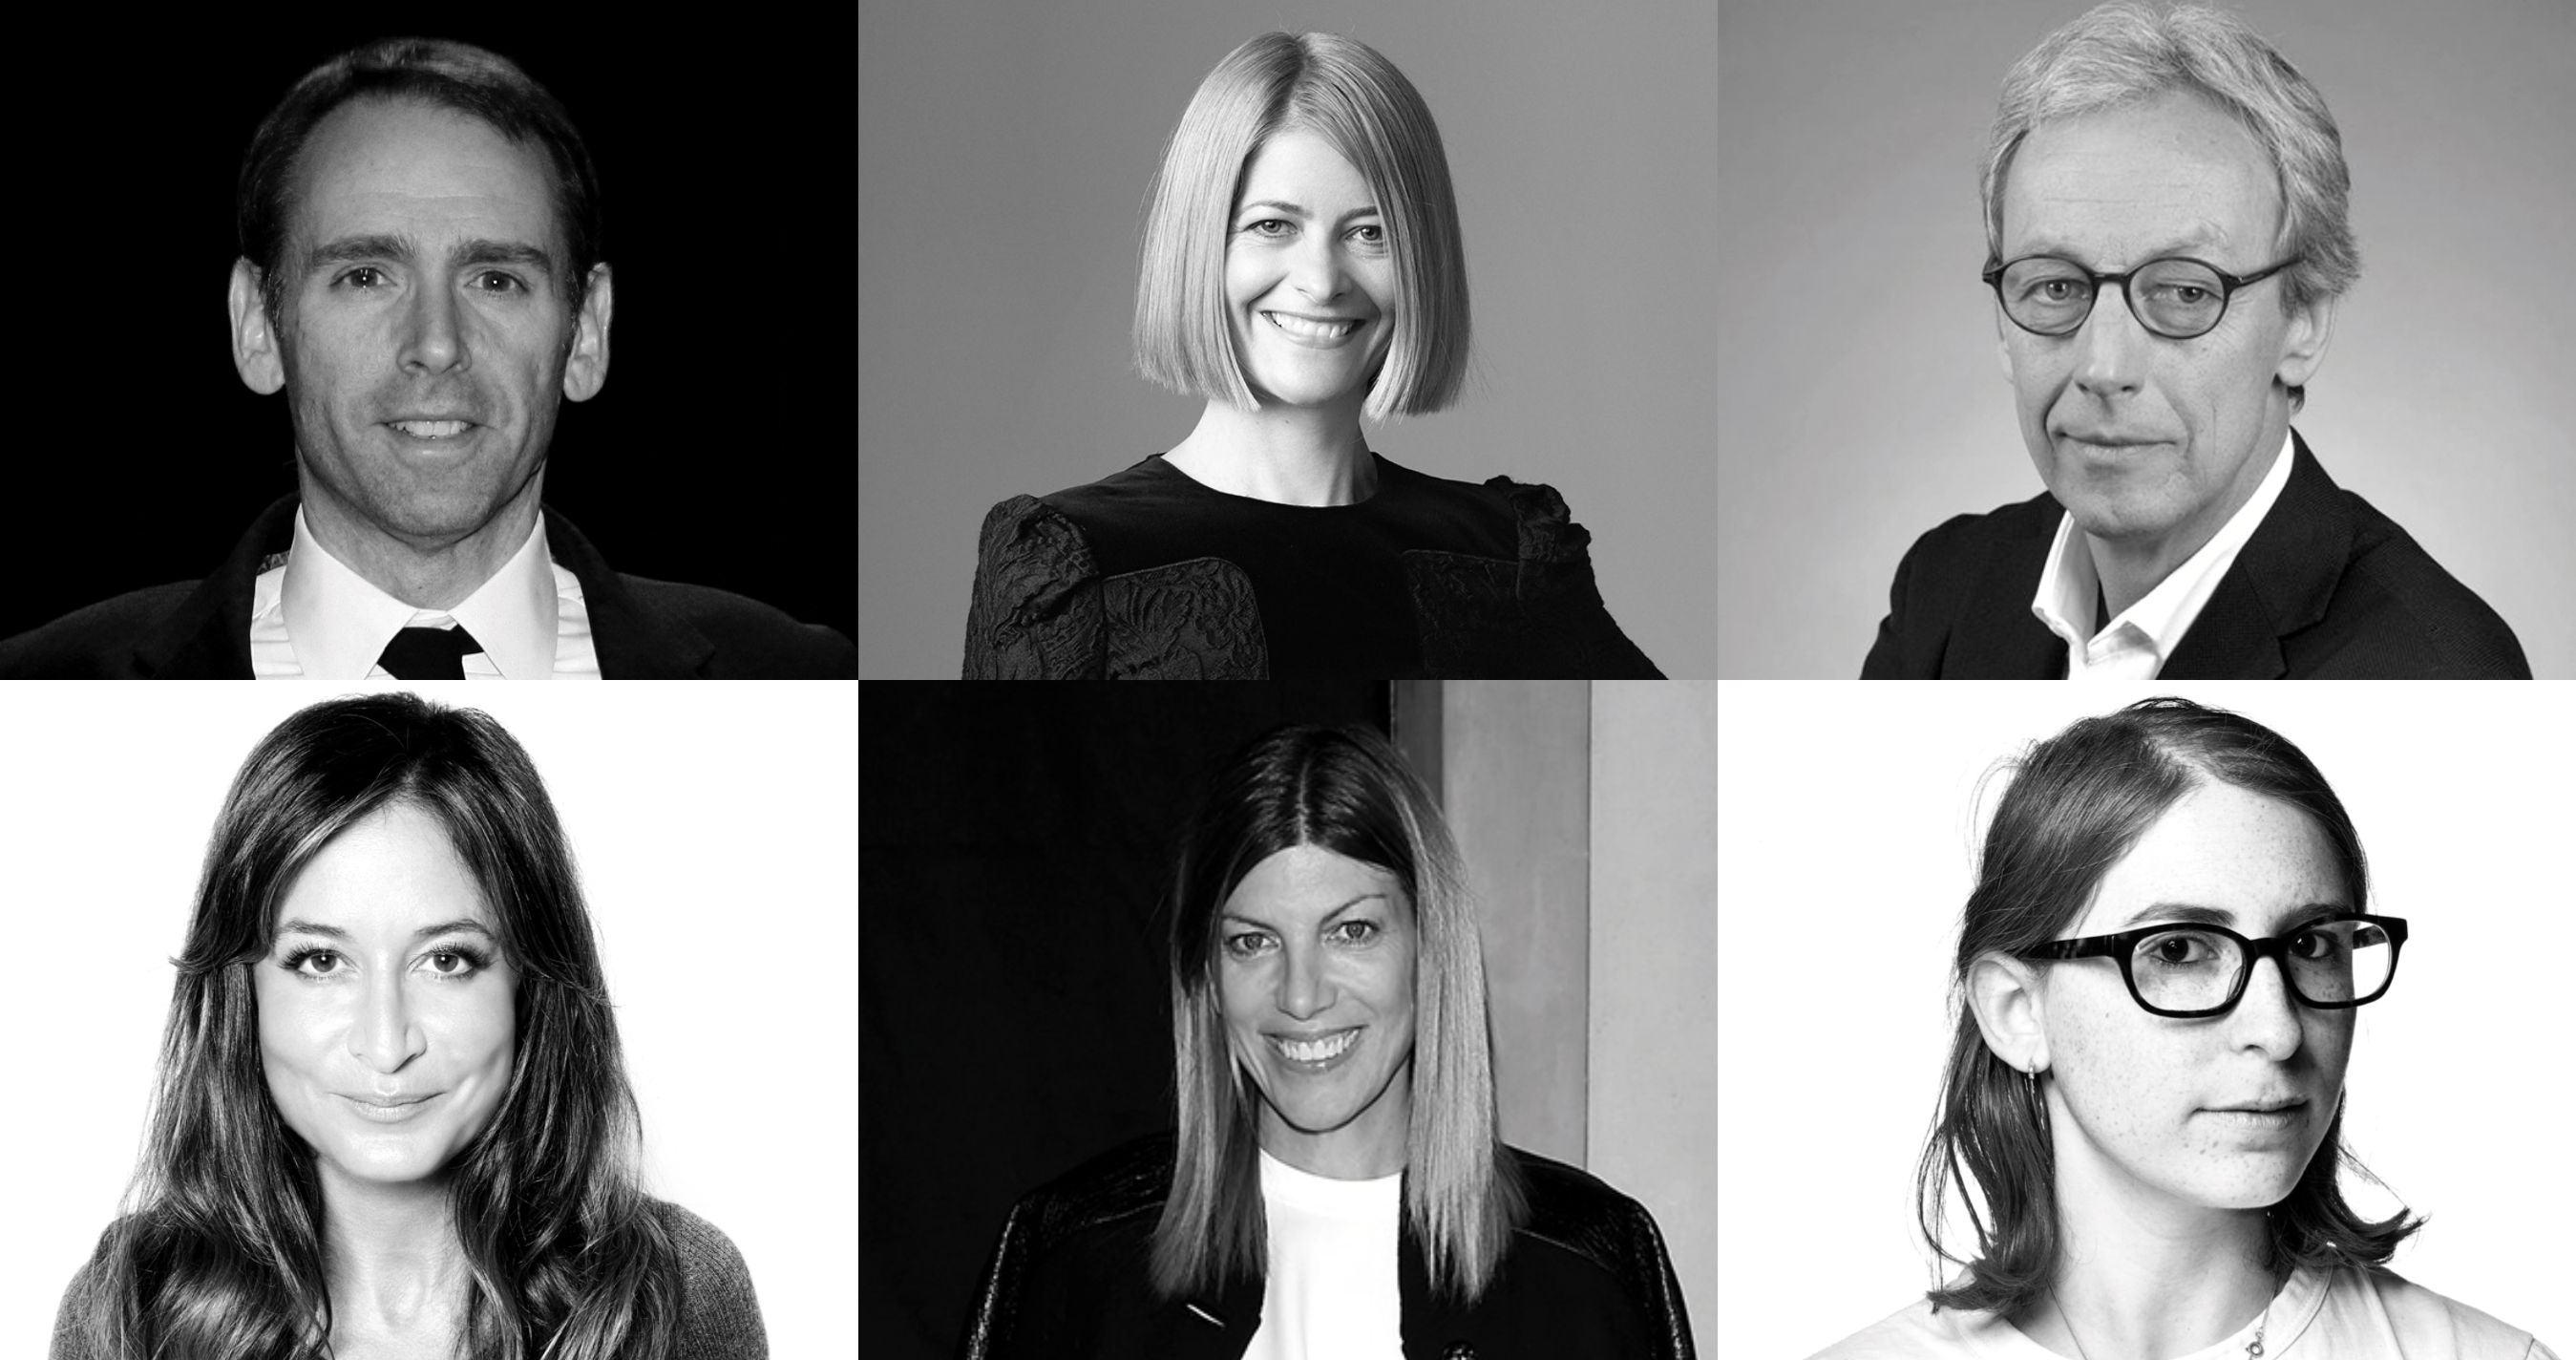 Bold Moves | DeLuca Joins HL Group, Oosting takes on Sonia Rykiel, Virginia Smith Promoted at Vogue